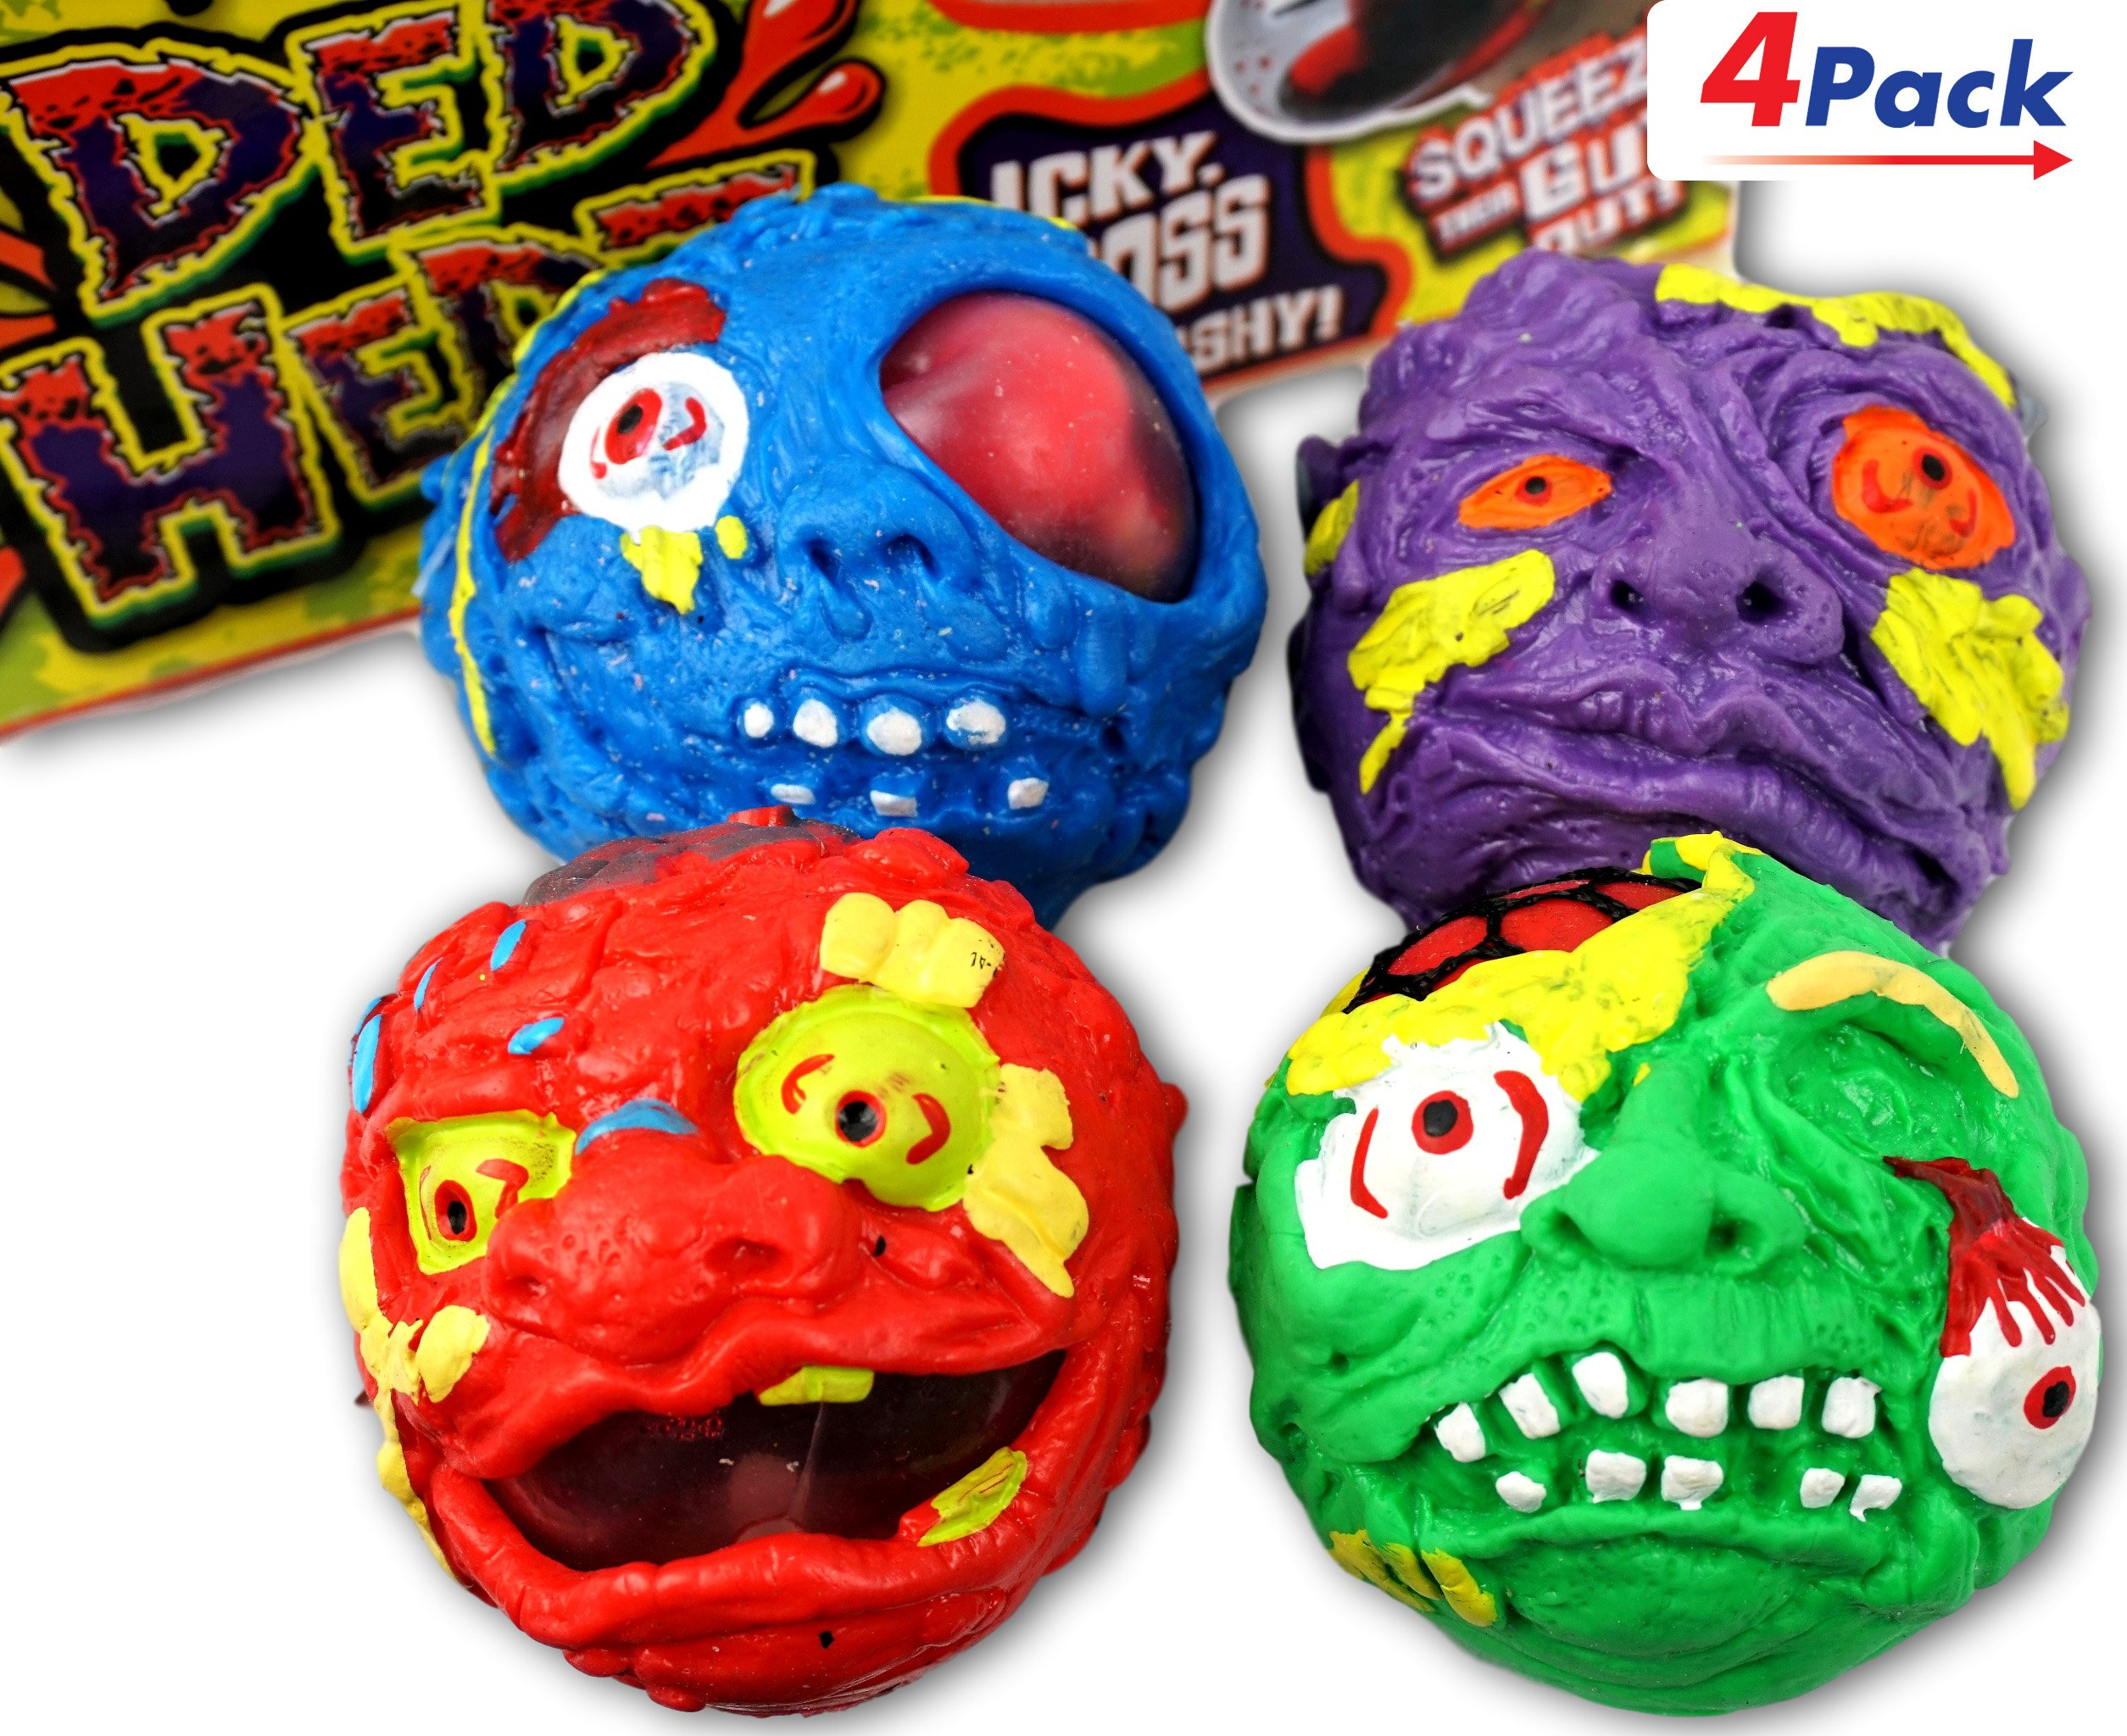 Ded Hedz Squishy Toy by JA-RU | Zombie Anxiety Relief Stress Ball Pack of 4 | Item #4236